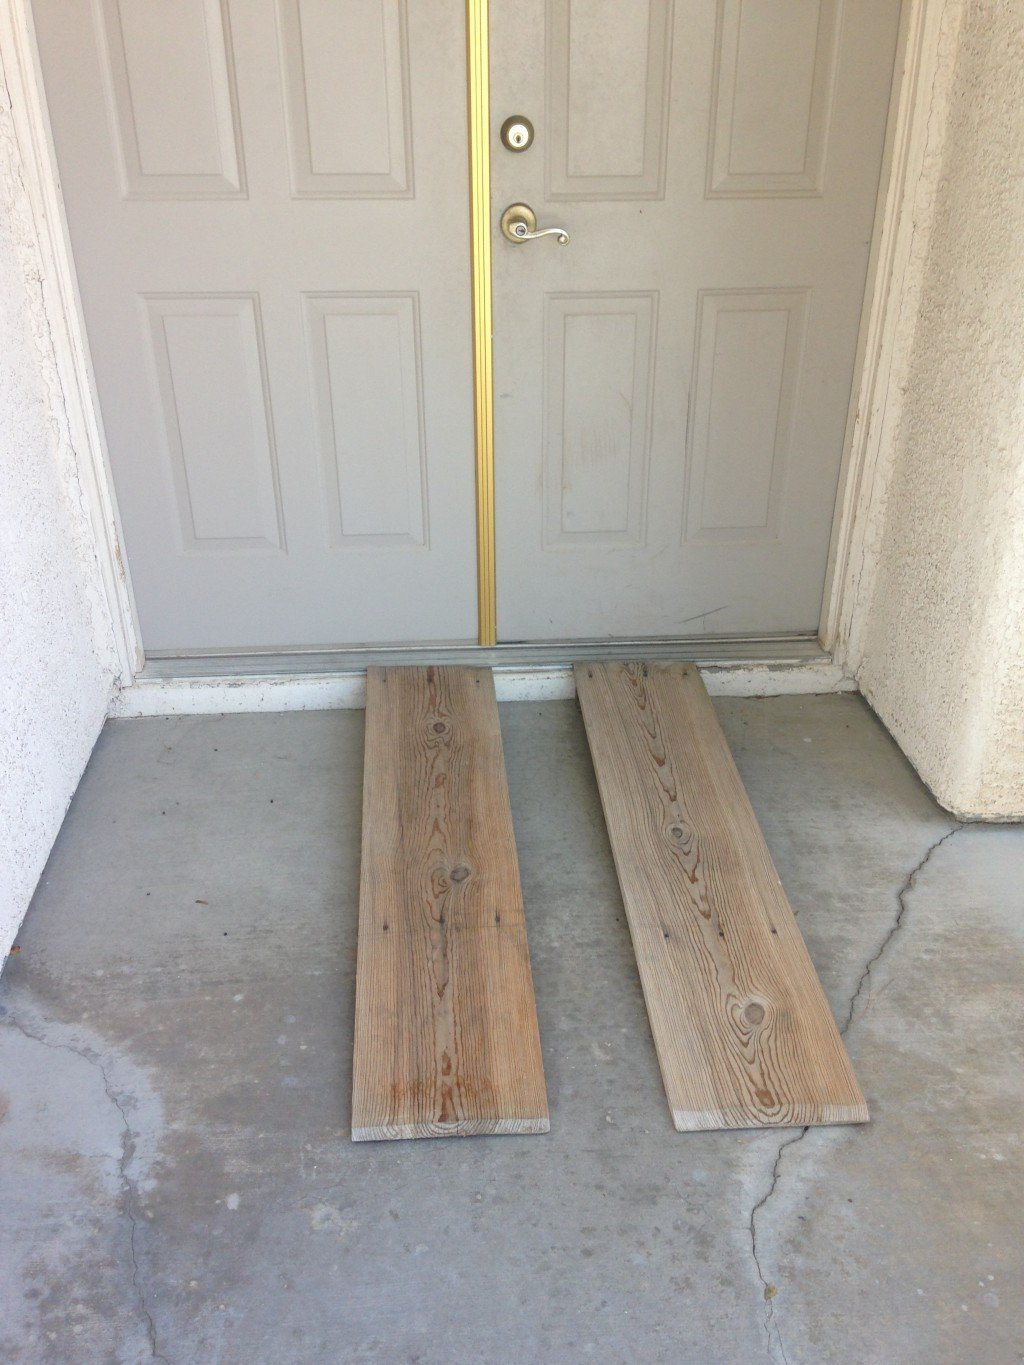 How To Build A Wooden Ramp For A Wheelchair Hubpages